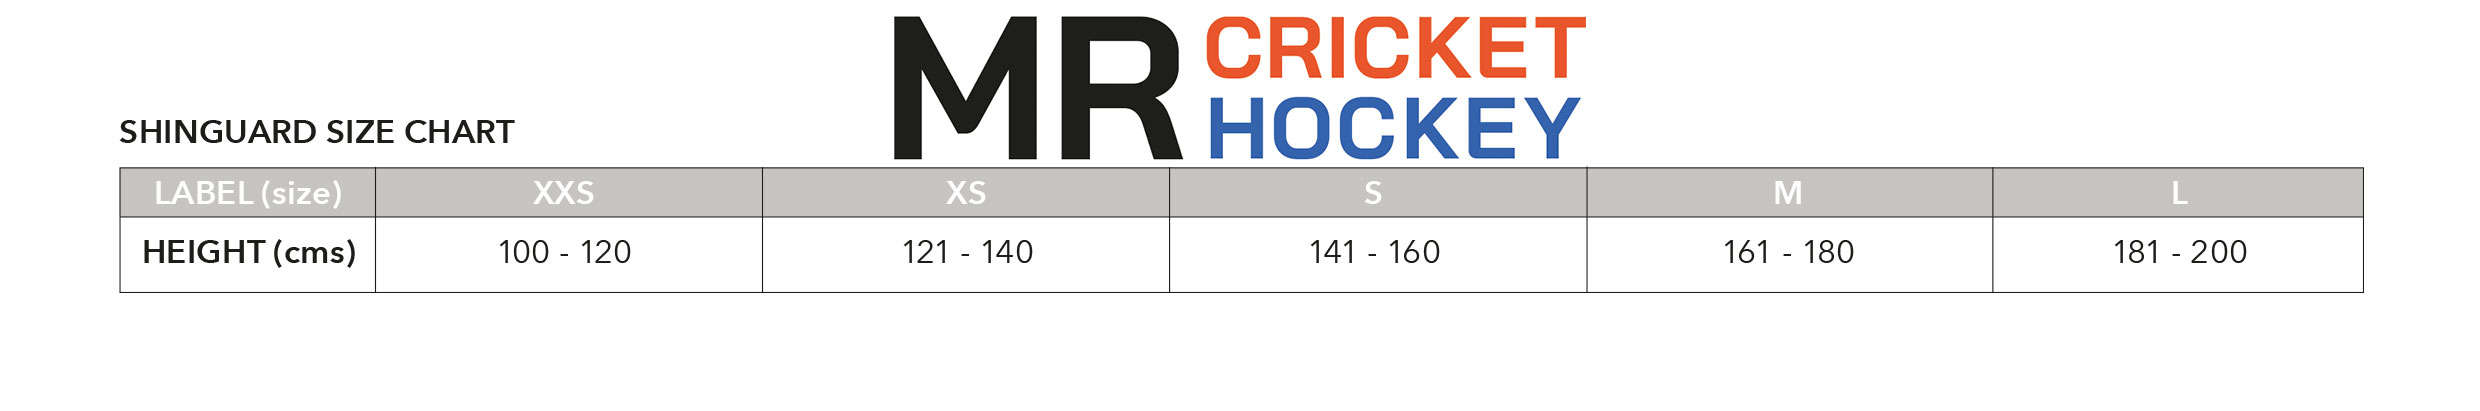 https://www.mrcrickethockey.com/wp-content/uploads/2019/07/Grays-Hockey-Shinpad-Size-CHart.jpg